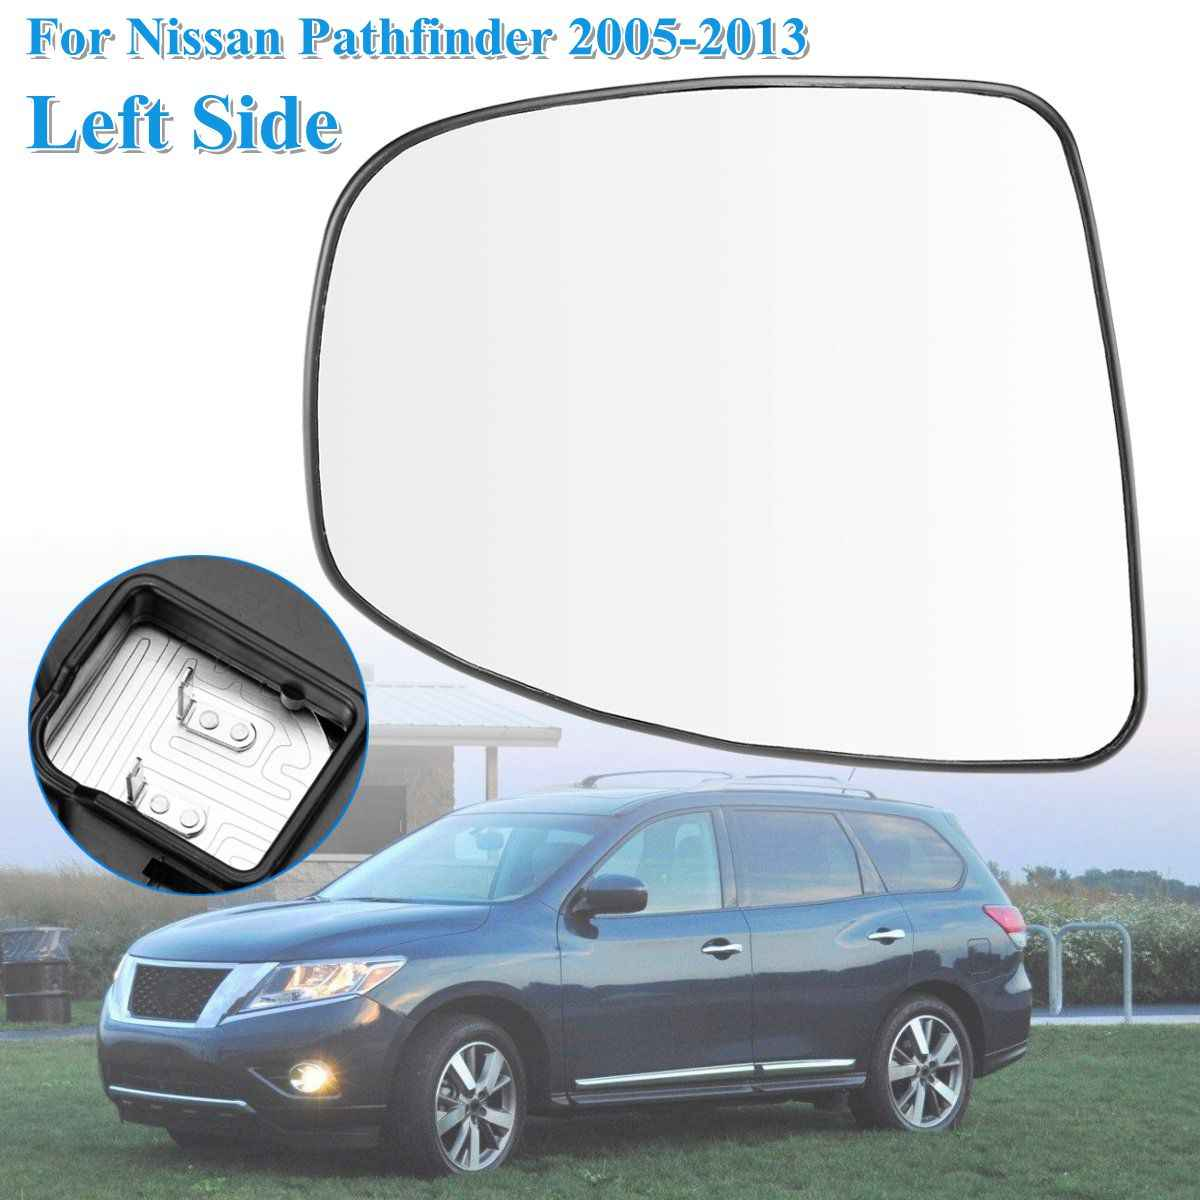 Replacement Right Left Side Door Heated Wing Mirror Glass with Heated  Function for Nissan Pathfinder R51 2005 06 07 08 09-13